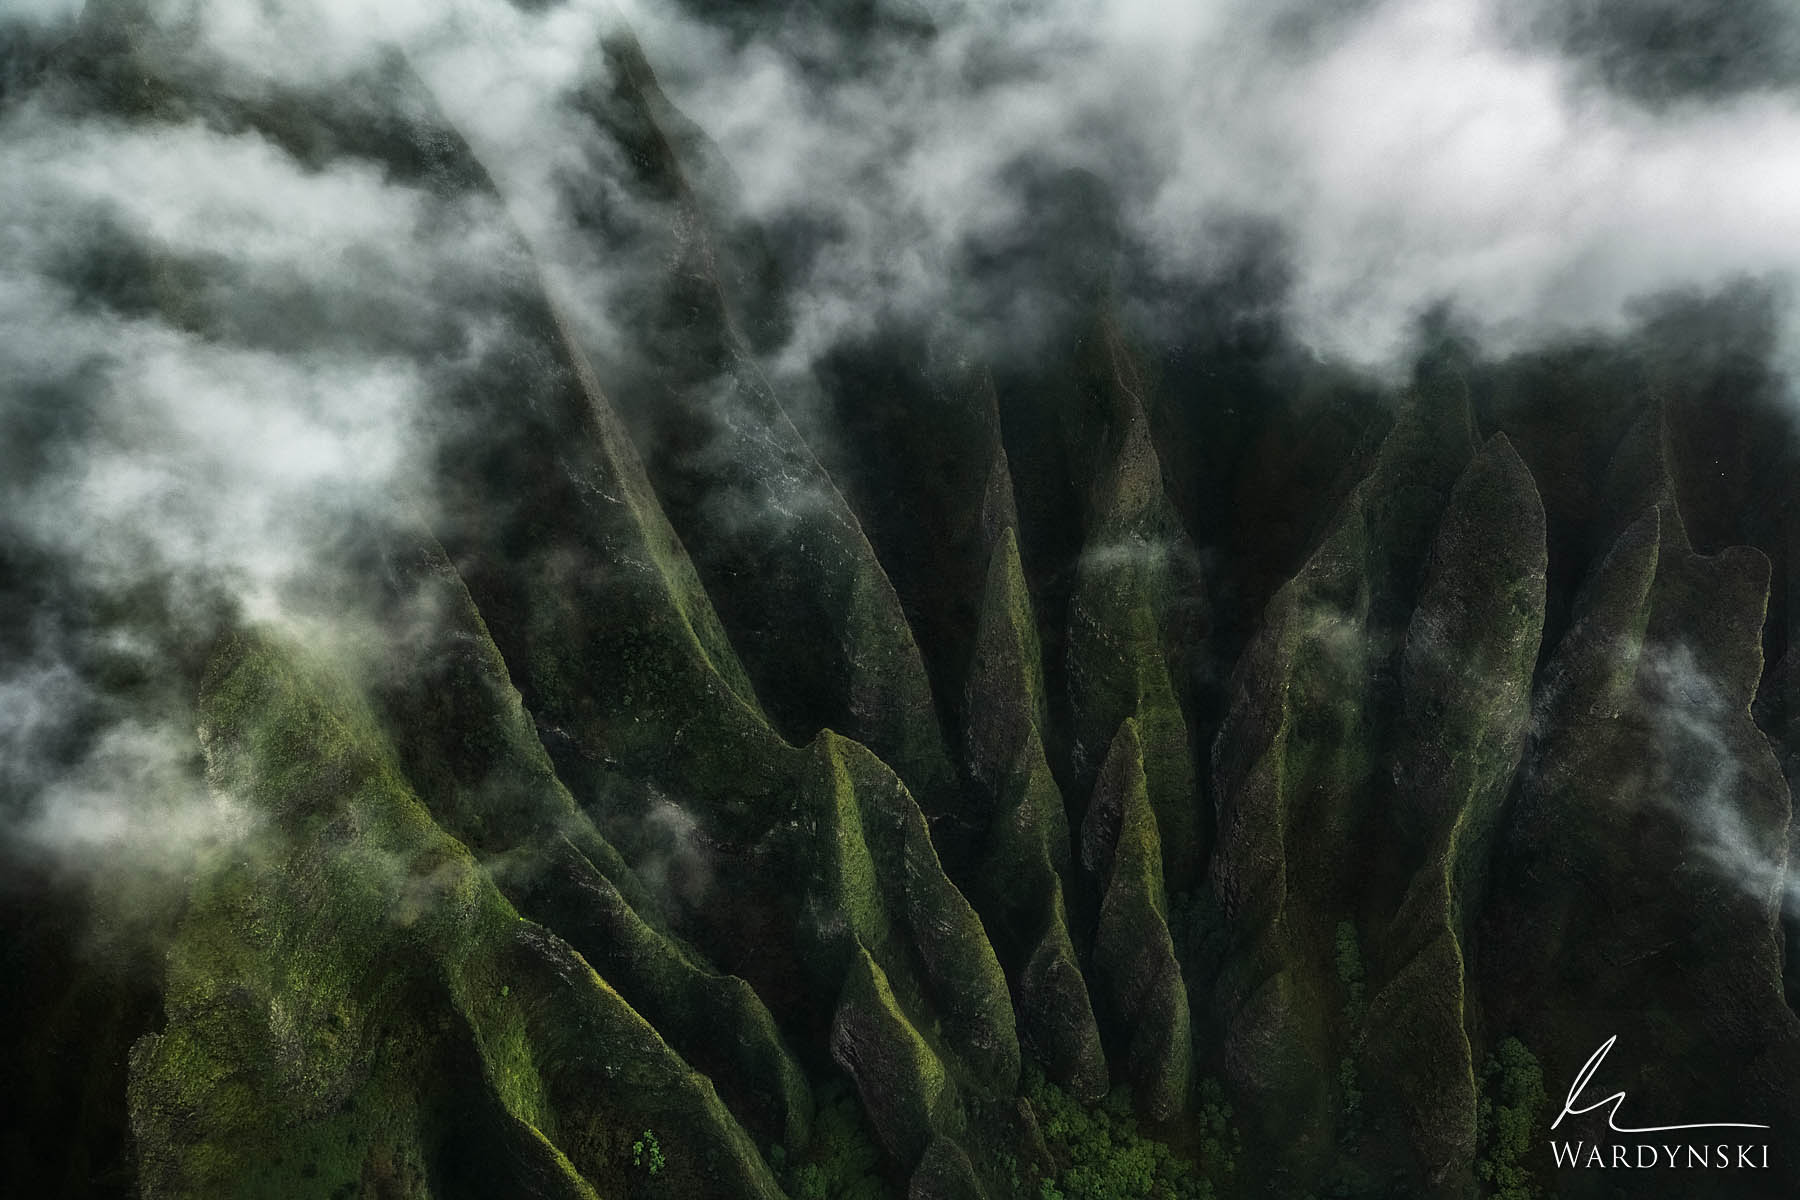 Fine Art Print | Limited Edition of 50  Massive cathedrals covered in green vegetation tower into moody clouds along the Na Pali...